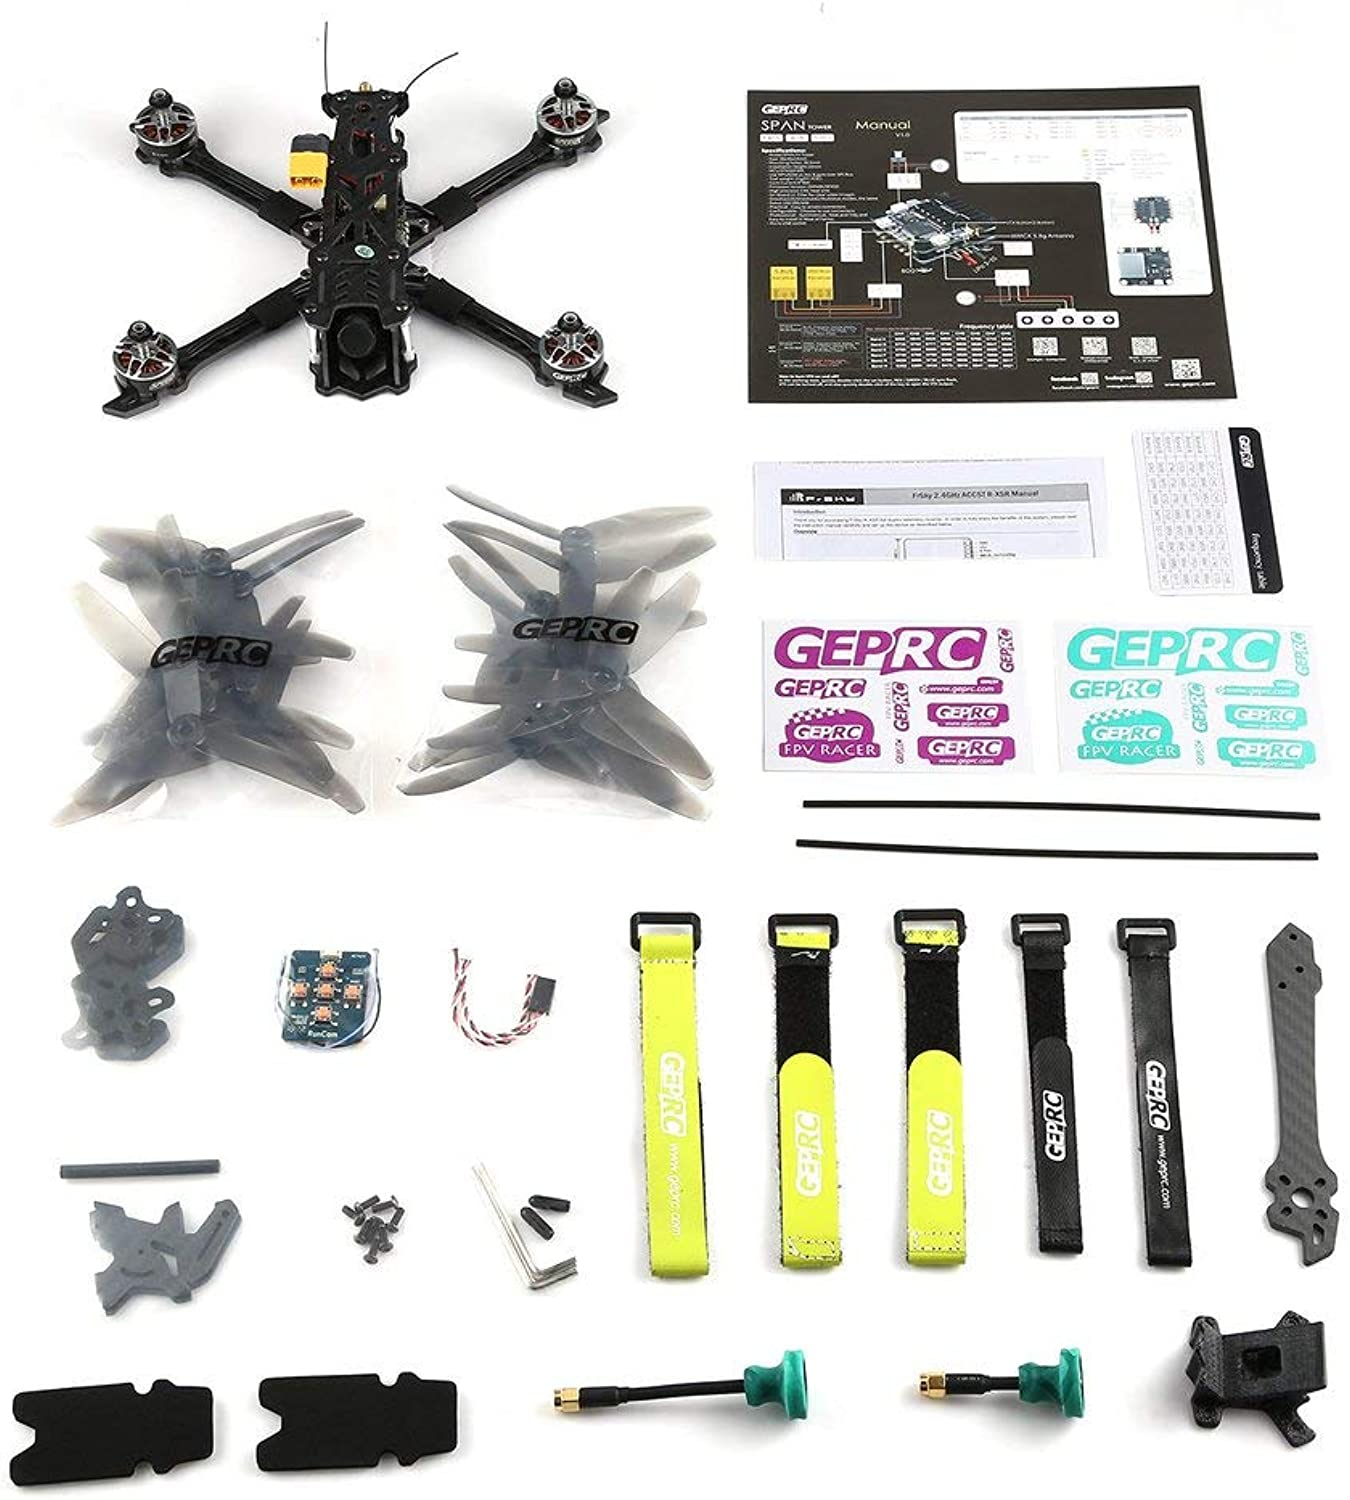 GreatWall GEPRC Mark2 FPV Brushless RC Racing Drohnenkamera Voll 3K Carbon BNF PAL Silber